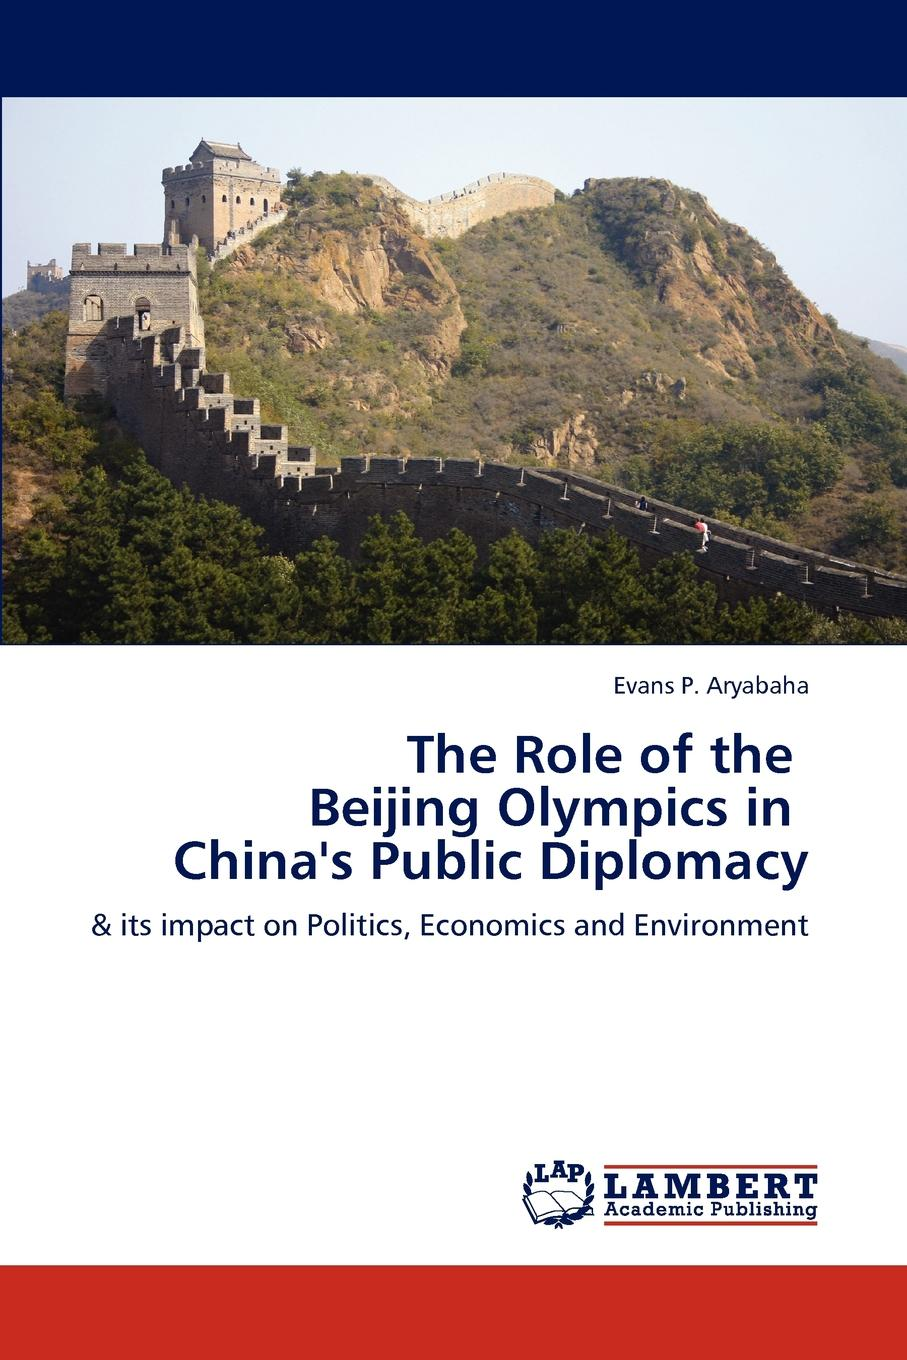 Evans P. Aryabaha The Role of the Beijing Olympics in China.s Public Diplomacy art and china s revolution